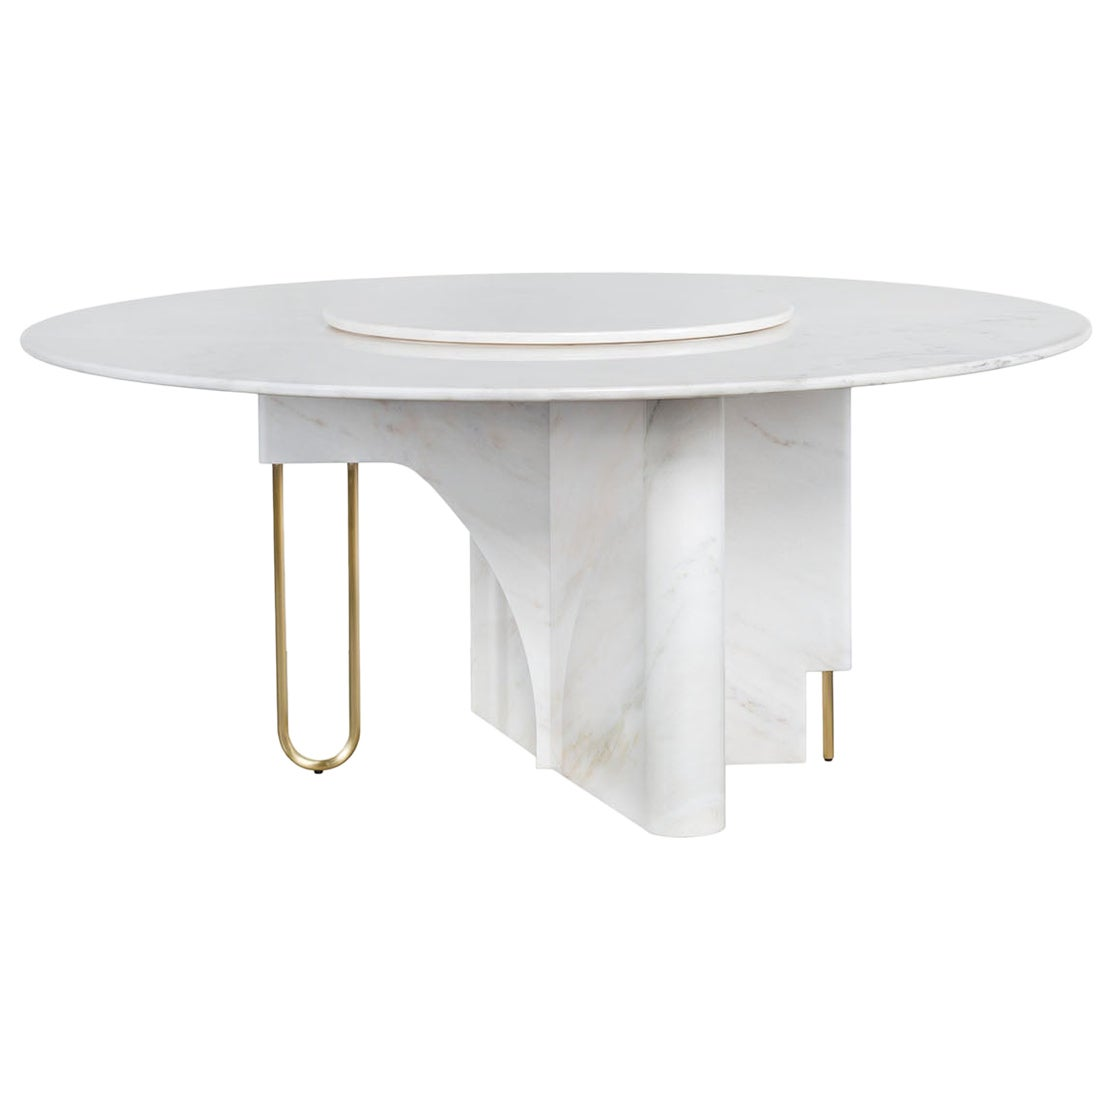 Ferreirinha 8-Seat Round Dining Table Lazy Susan Calacatta Bianco Brushed Brass